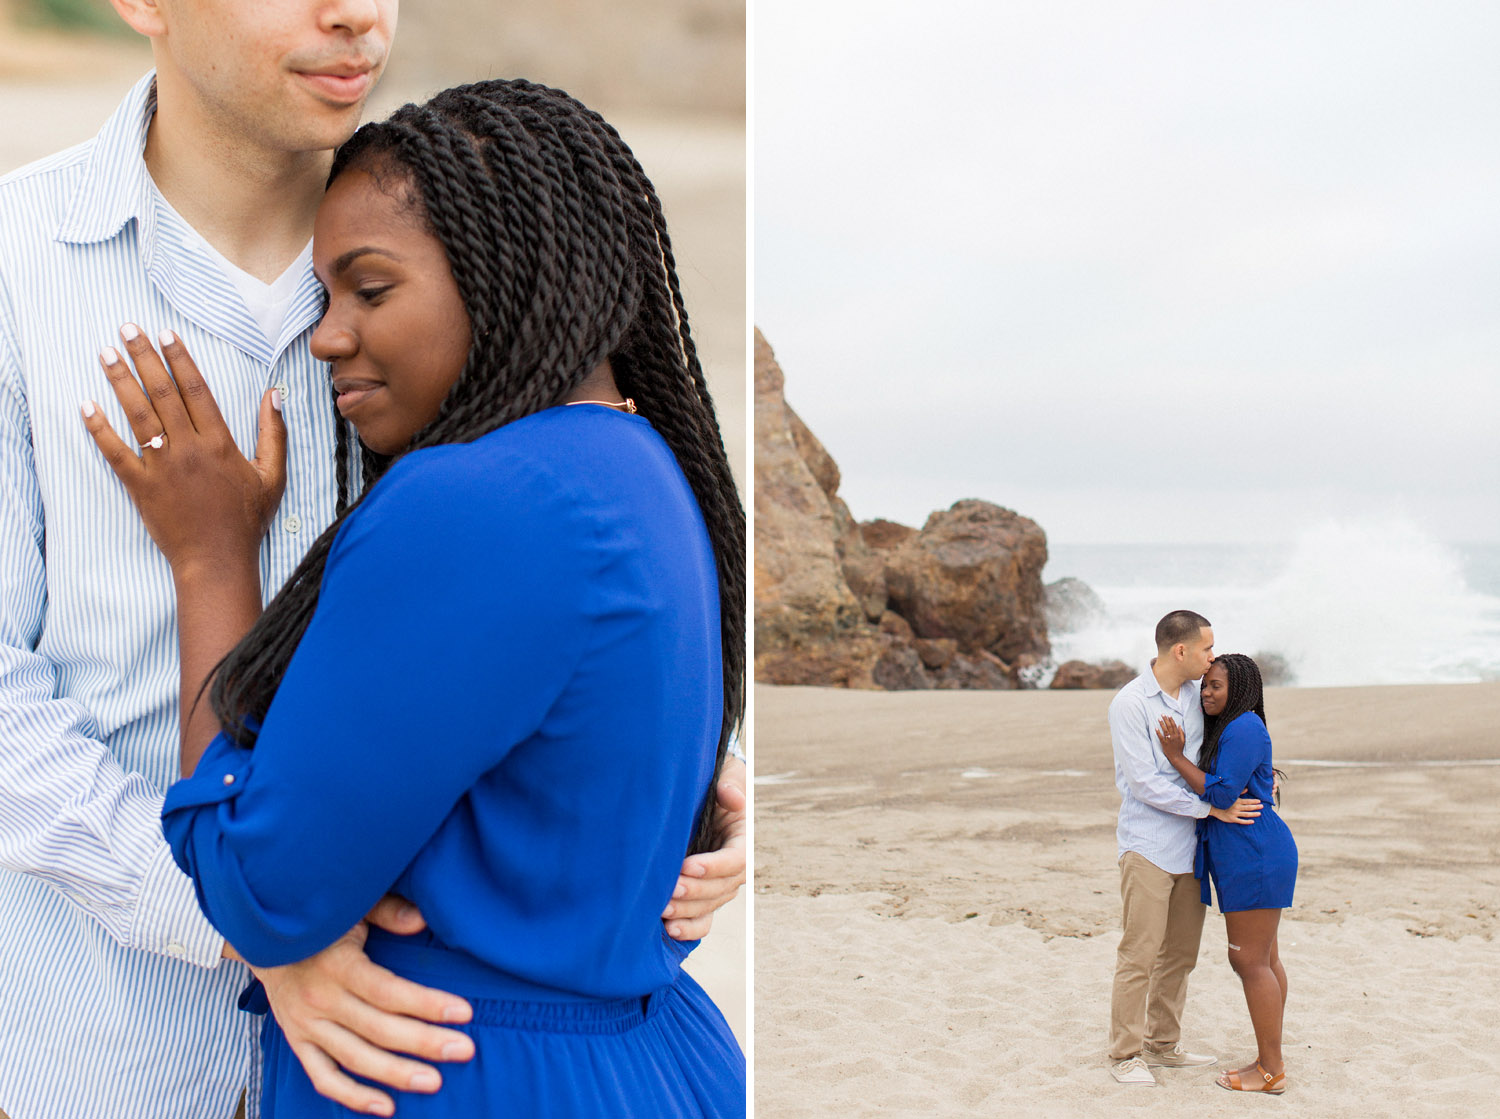 los-angeles-proposal-photographer013e.jpg